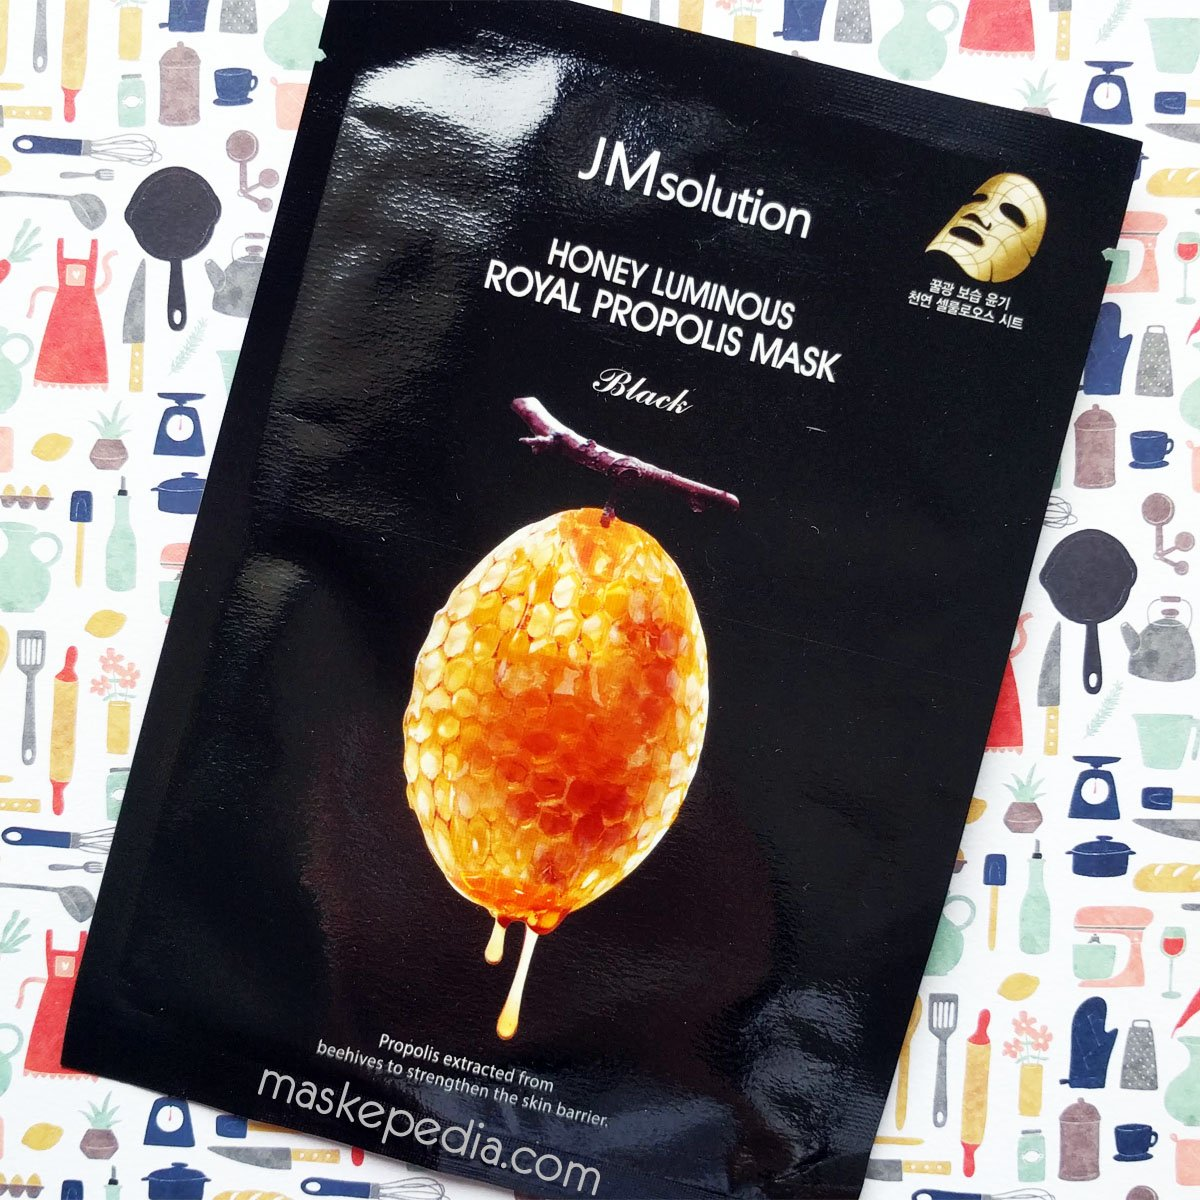 Review: JM Solution Honey Luminous Royal Propolis Mask ★★★★☆